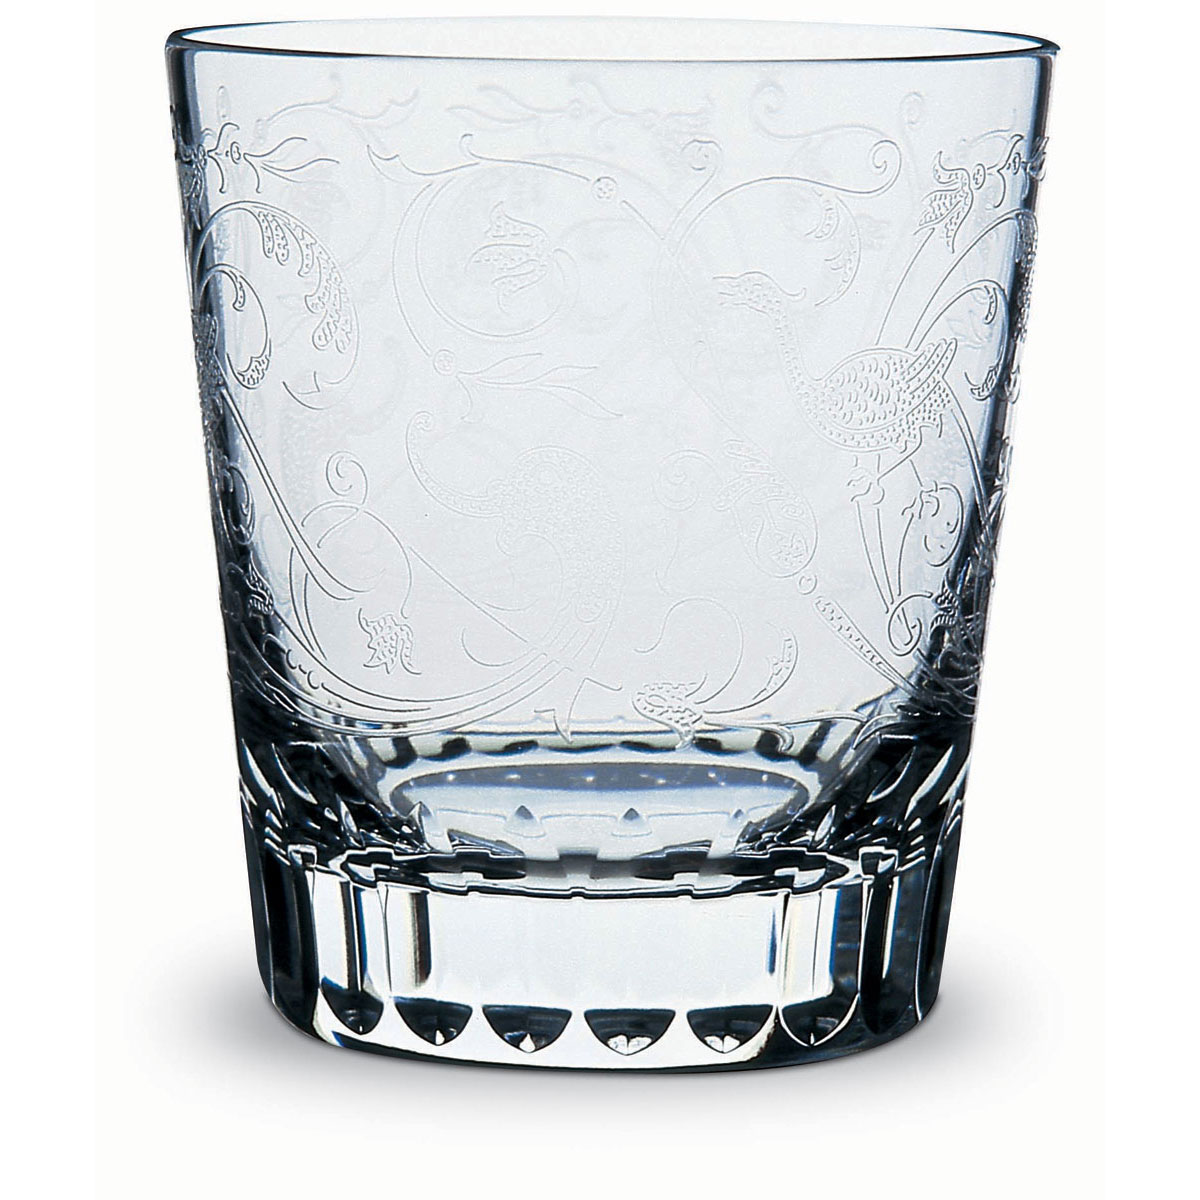 Baccarat Crystal, Parme Crystal Old Fashioned Tumbler, Single